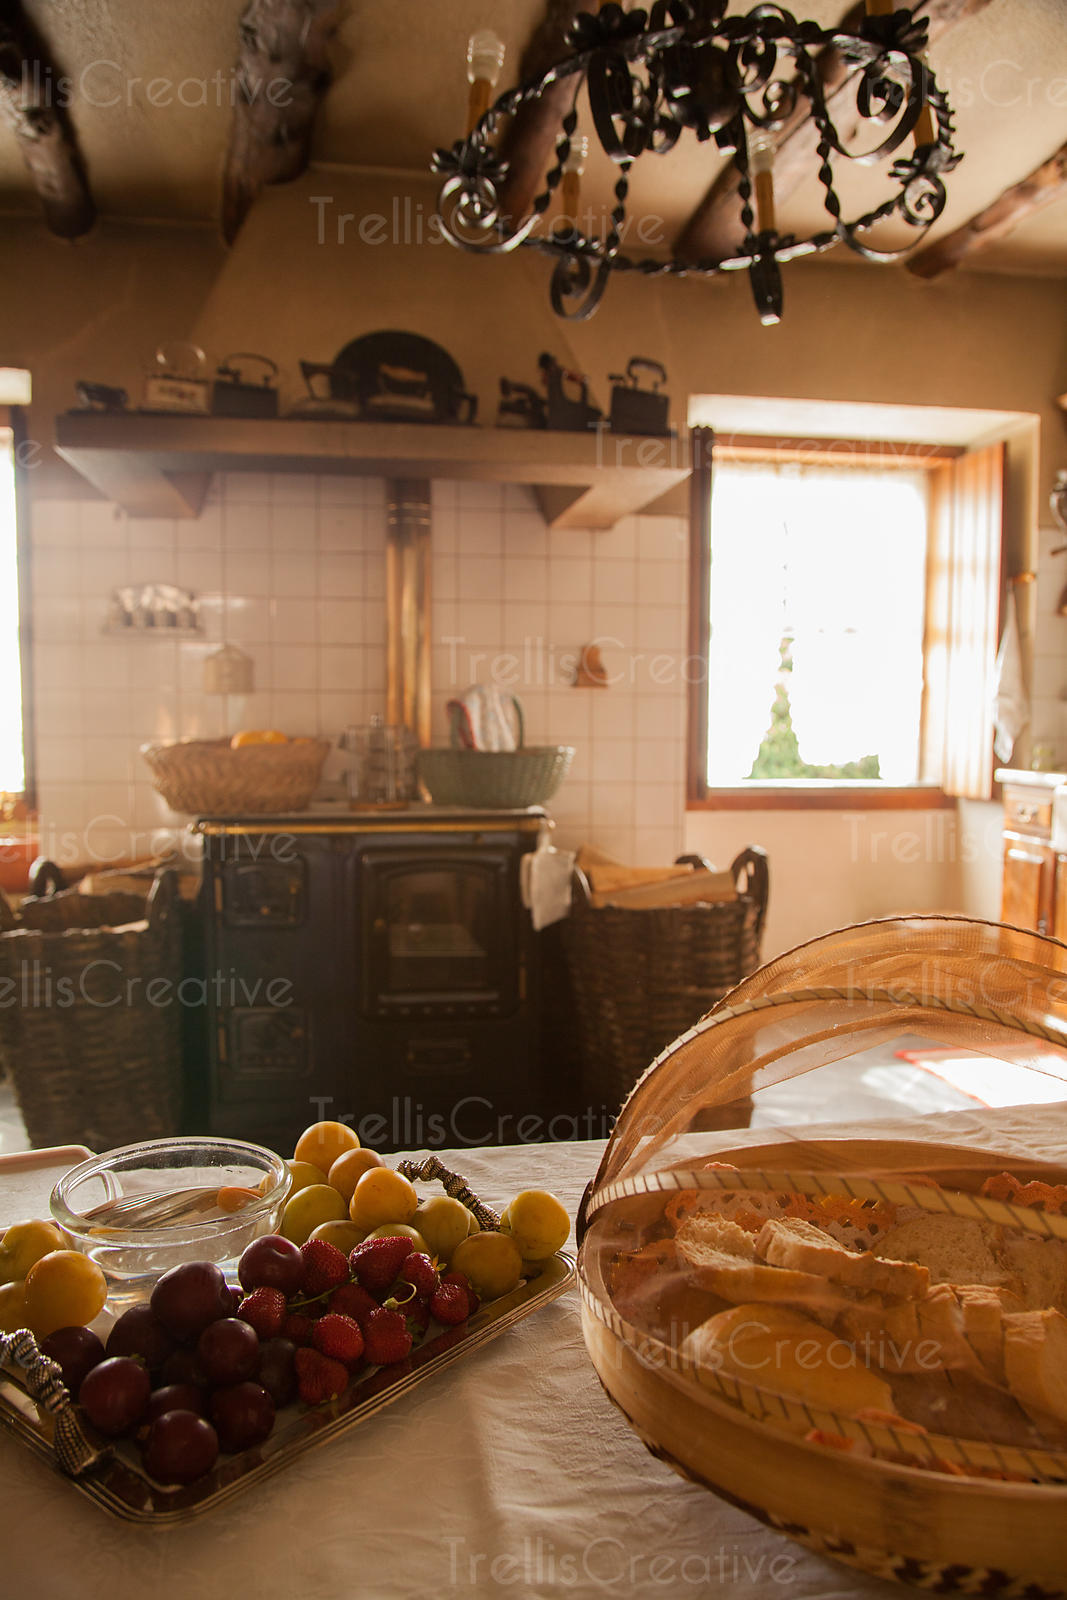 The farmhouse kitchen at the former Franciscan monastery, Quinta de Morrocos